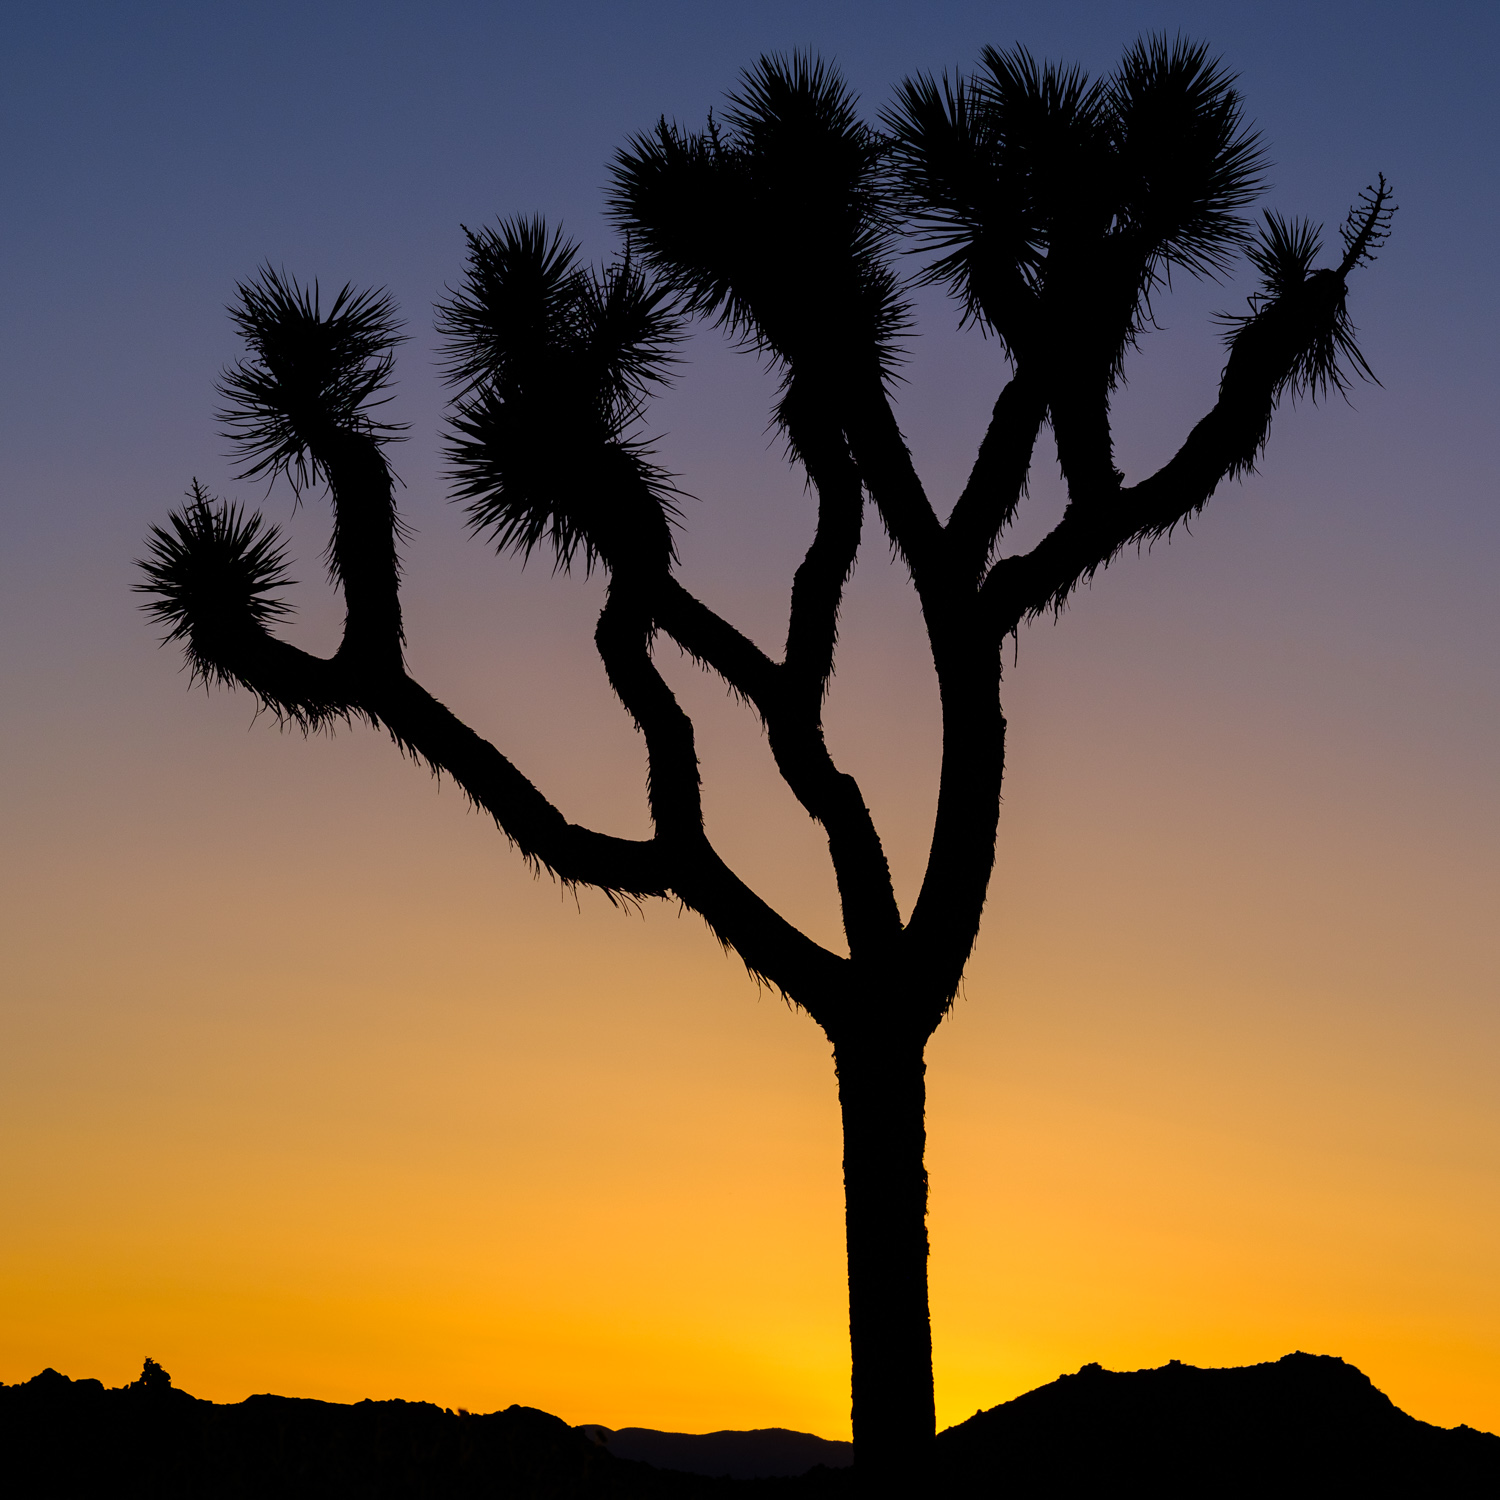 The Joshua tree in its iconic beauty, silhouetted by the setting Sun